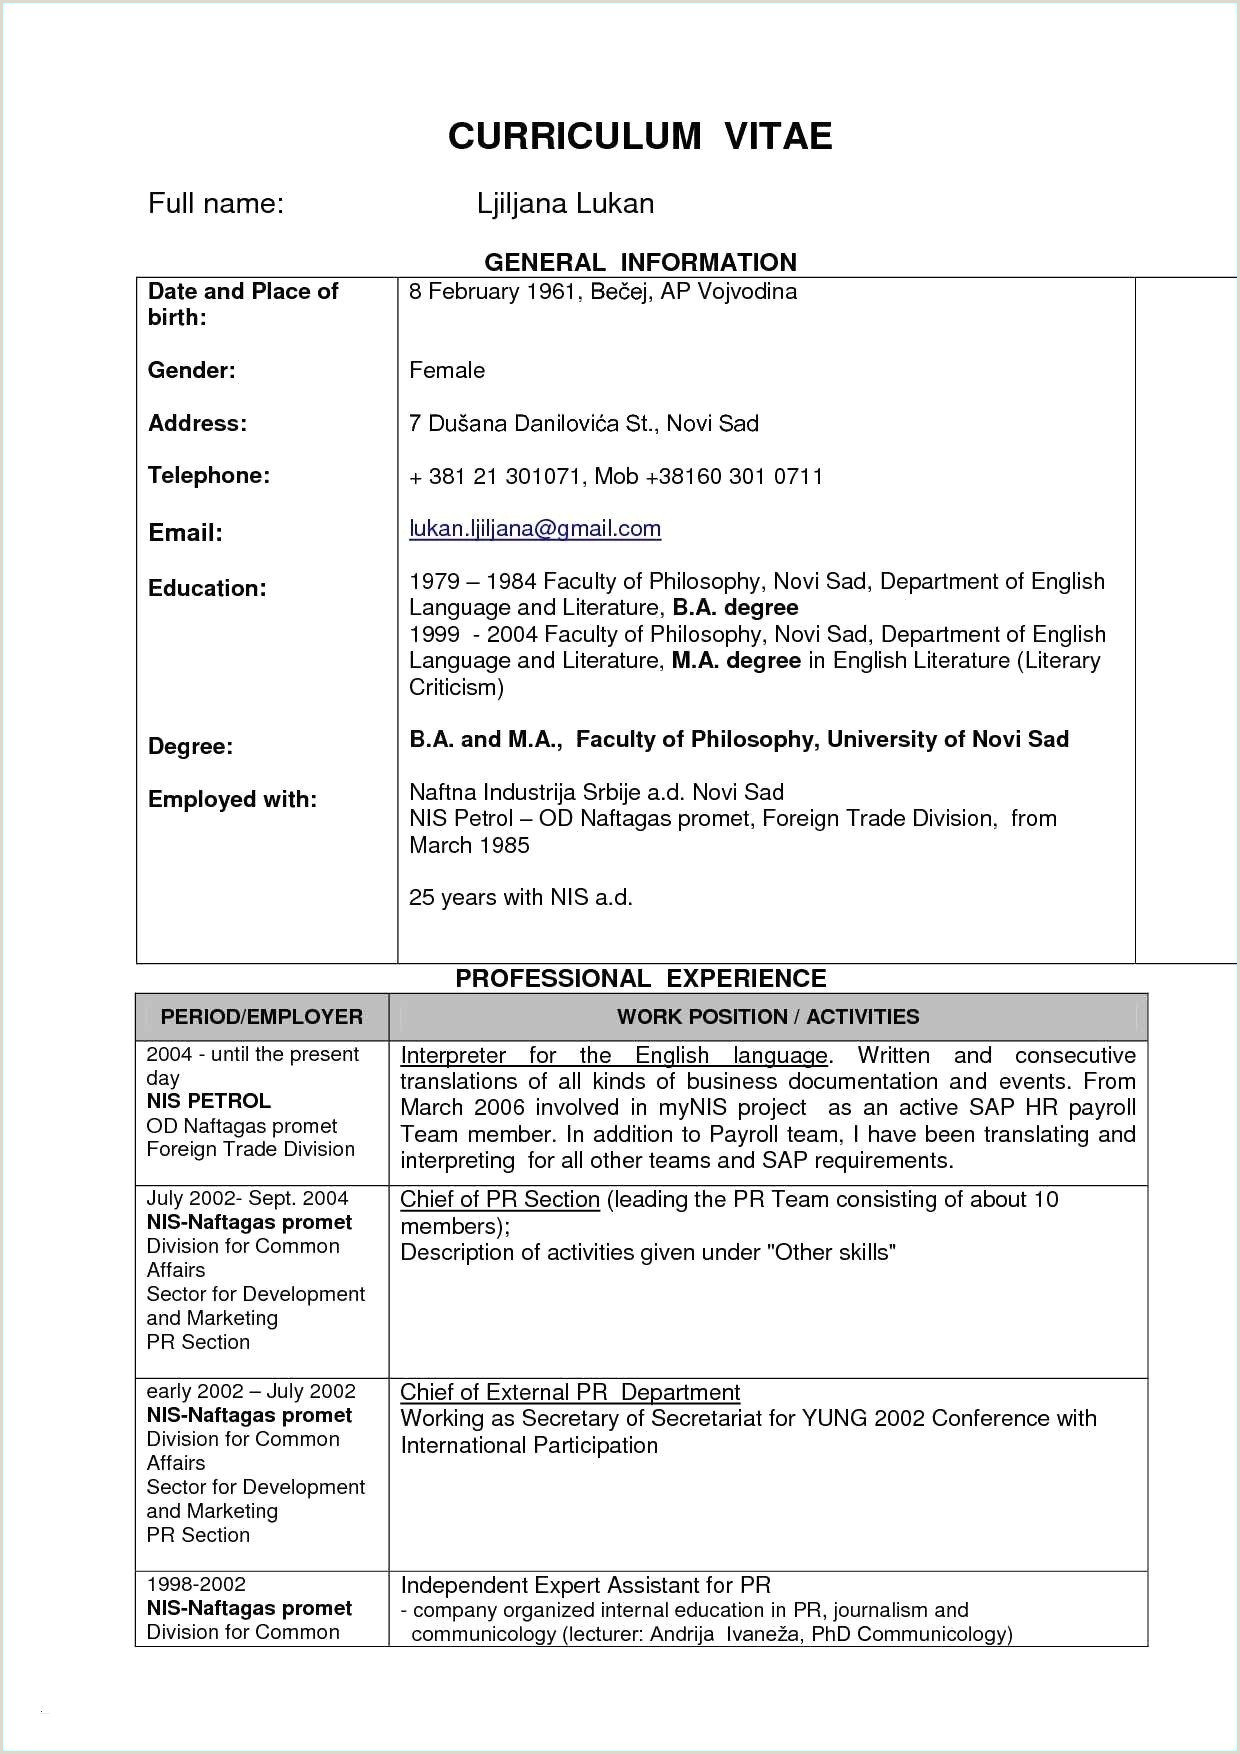 Fresher Resume Format For Structural Engineer 13 Resume Samples For Mechanical Engineer Fresher